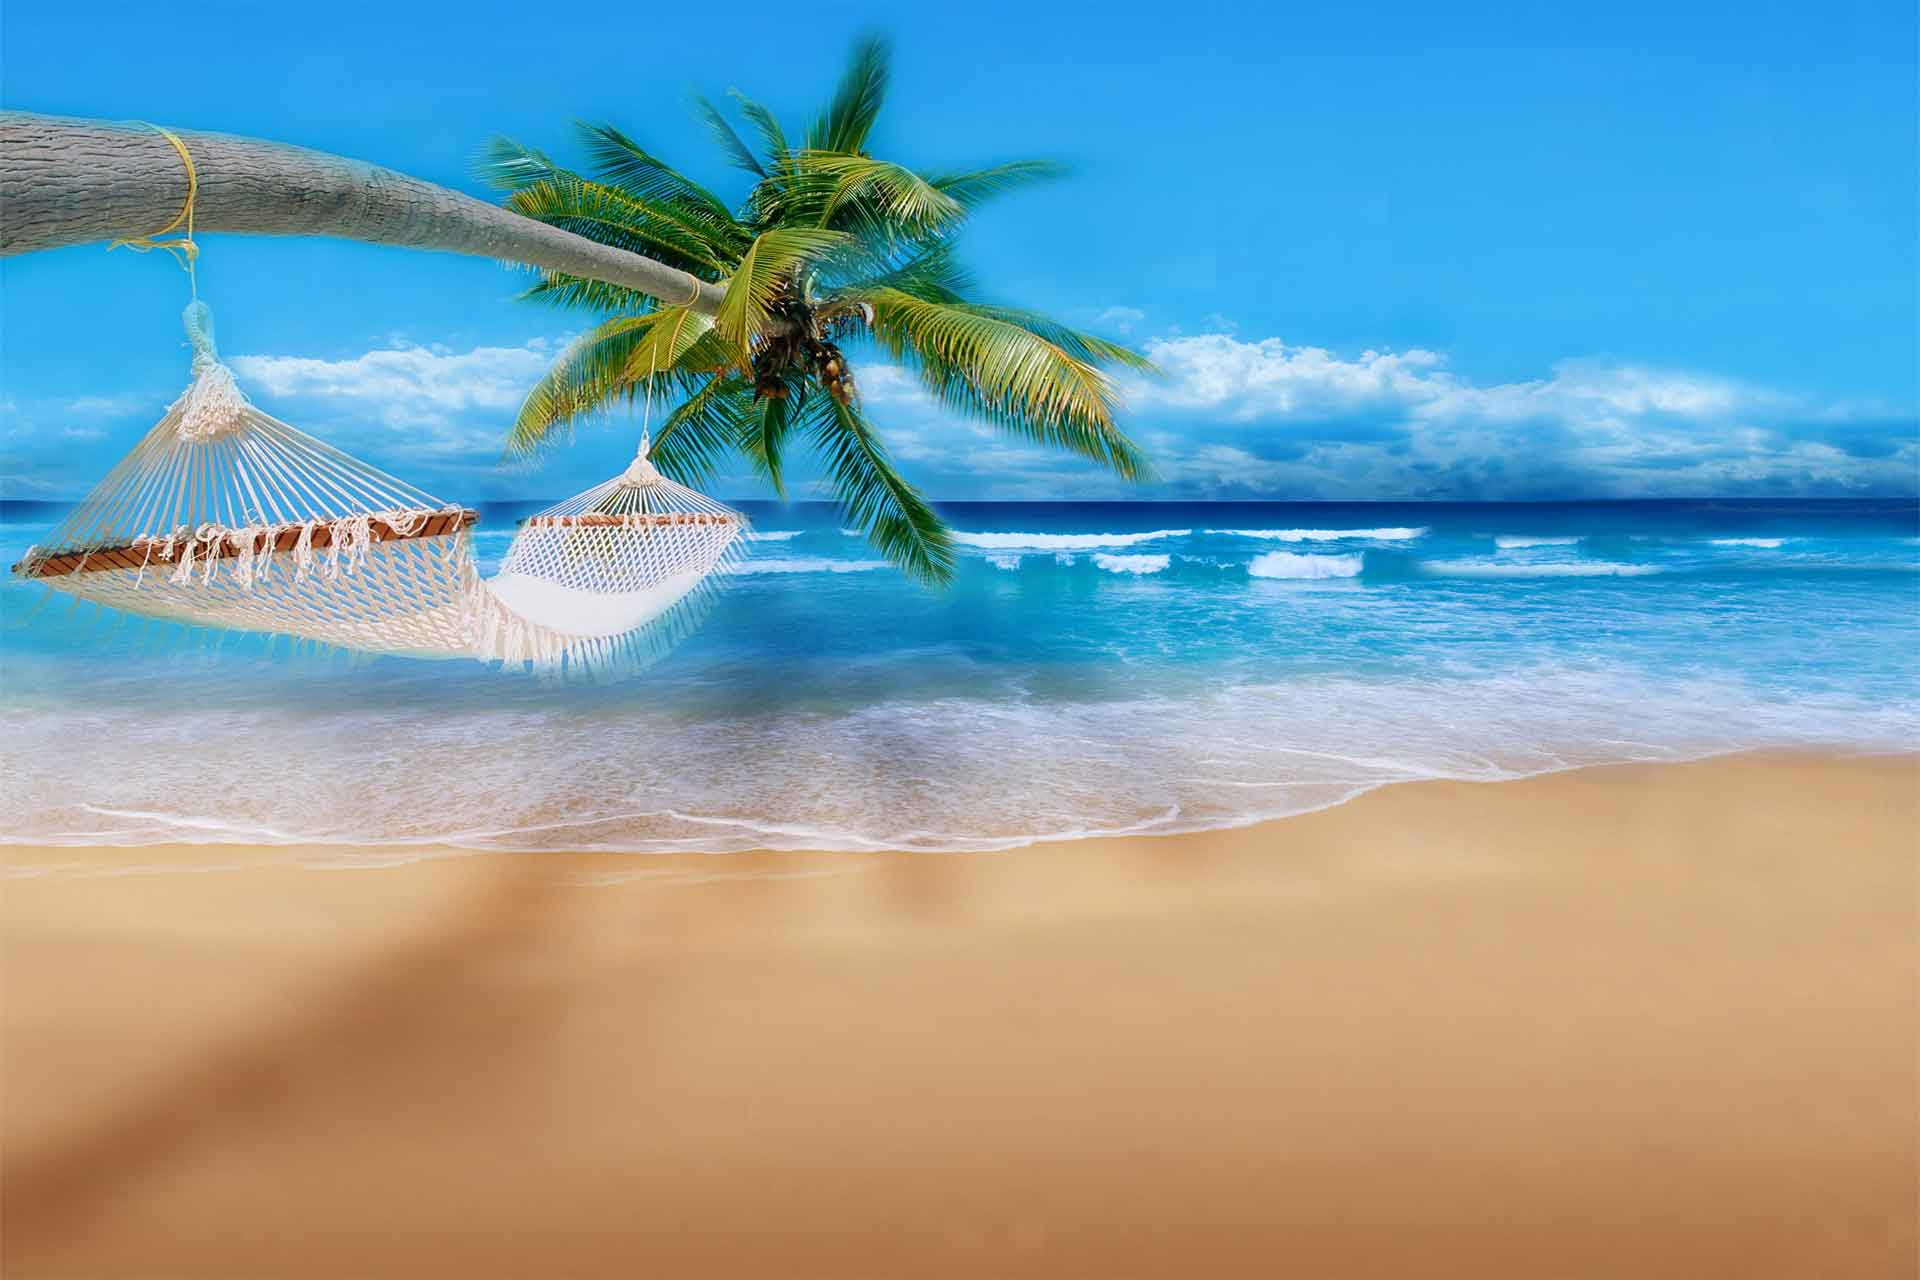 hawaii backgrounds image wallpaper cave